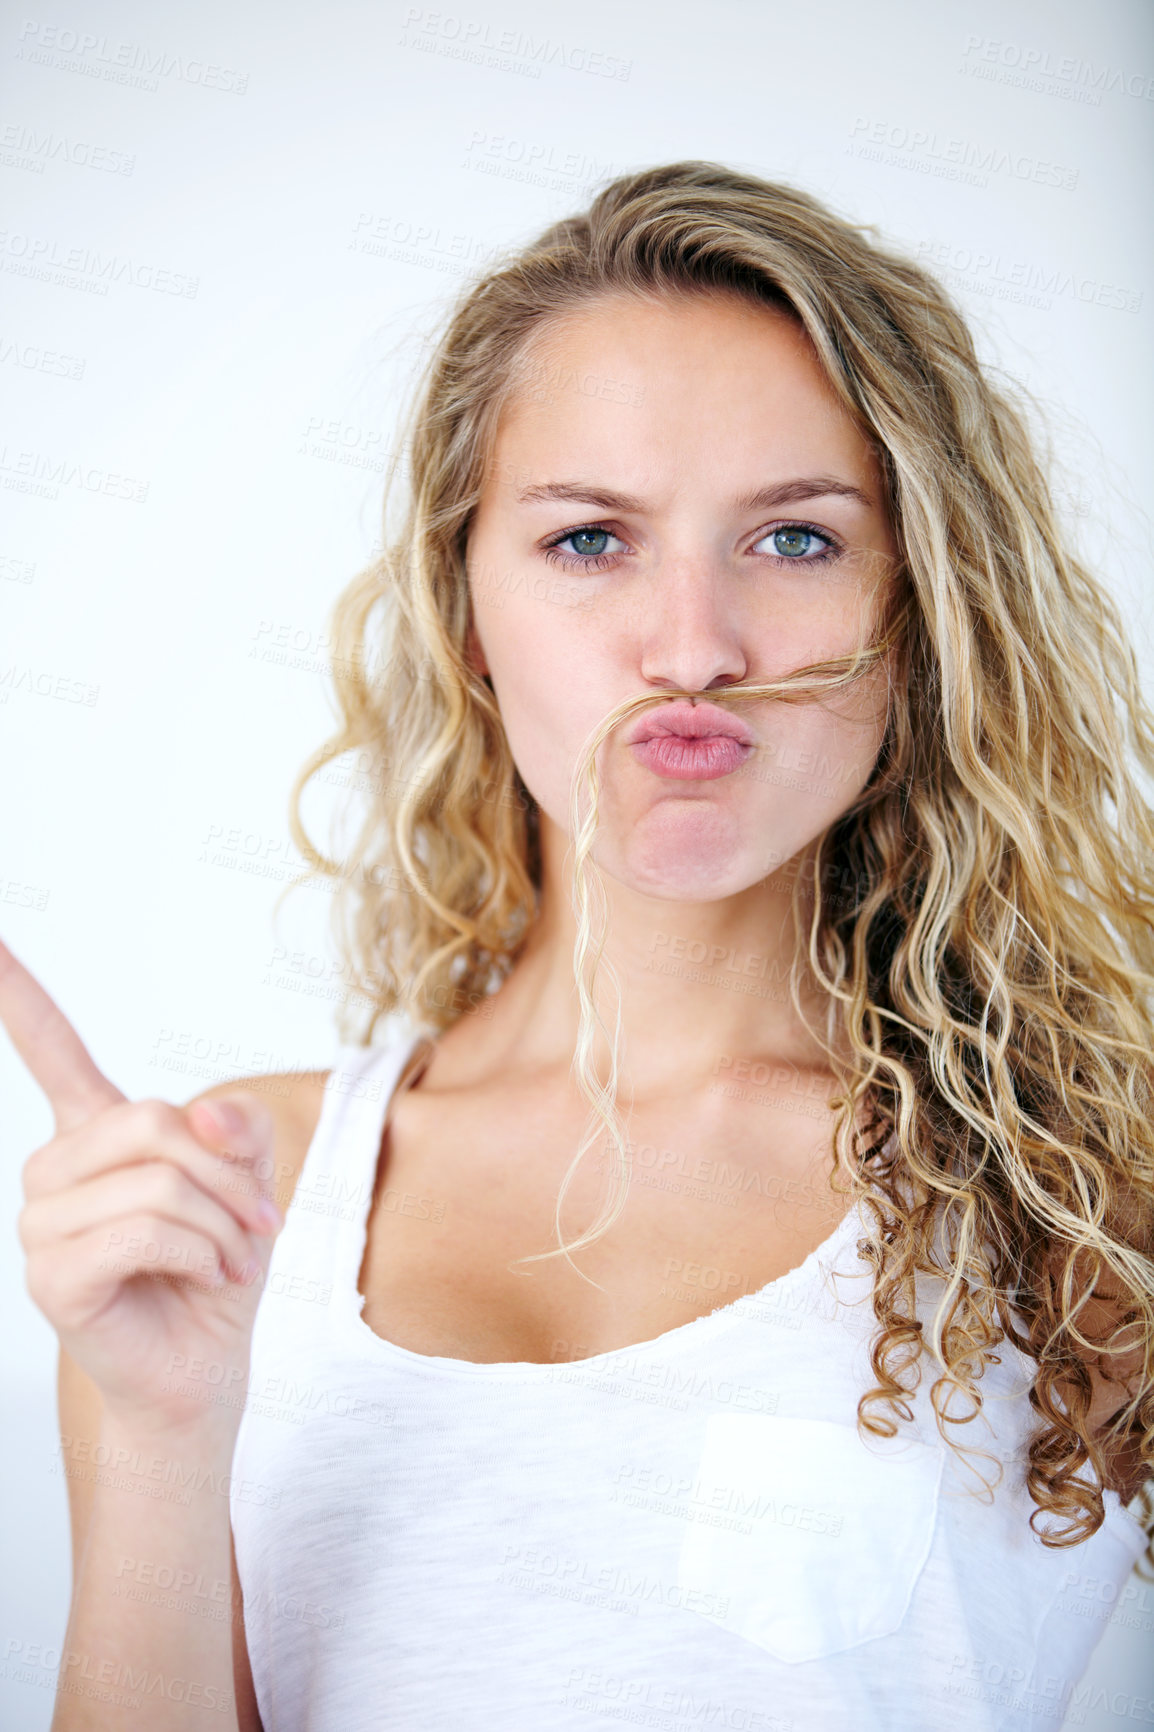 Buy stock photo A young beauty fooling around by putting her hair on her upper lip and pouting while pointing